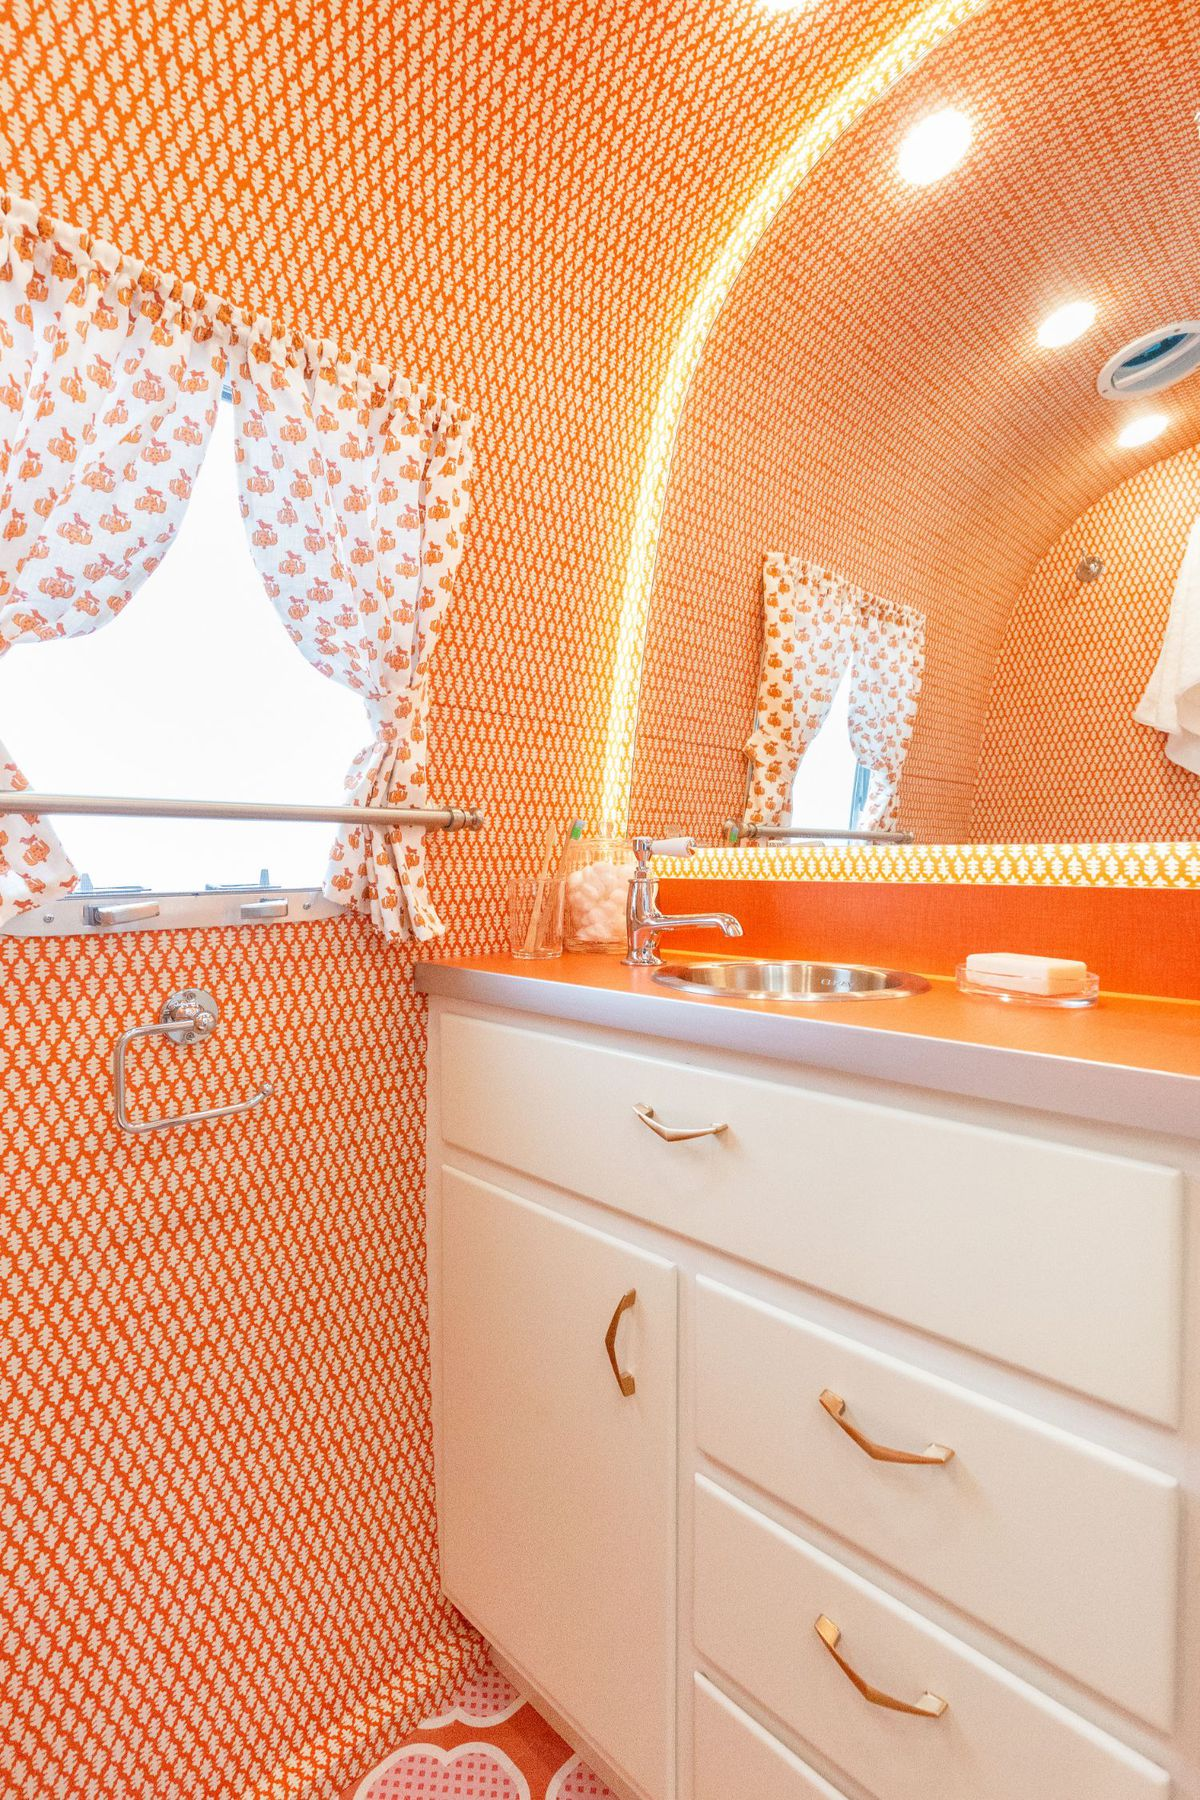 The bathroom features small coral tiles, a white cabinet, and bright orange countertops.